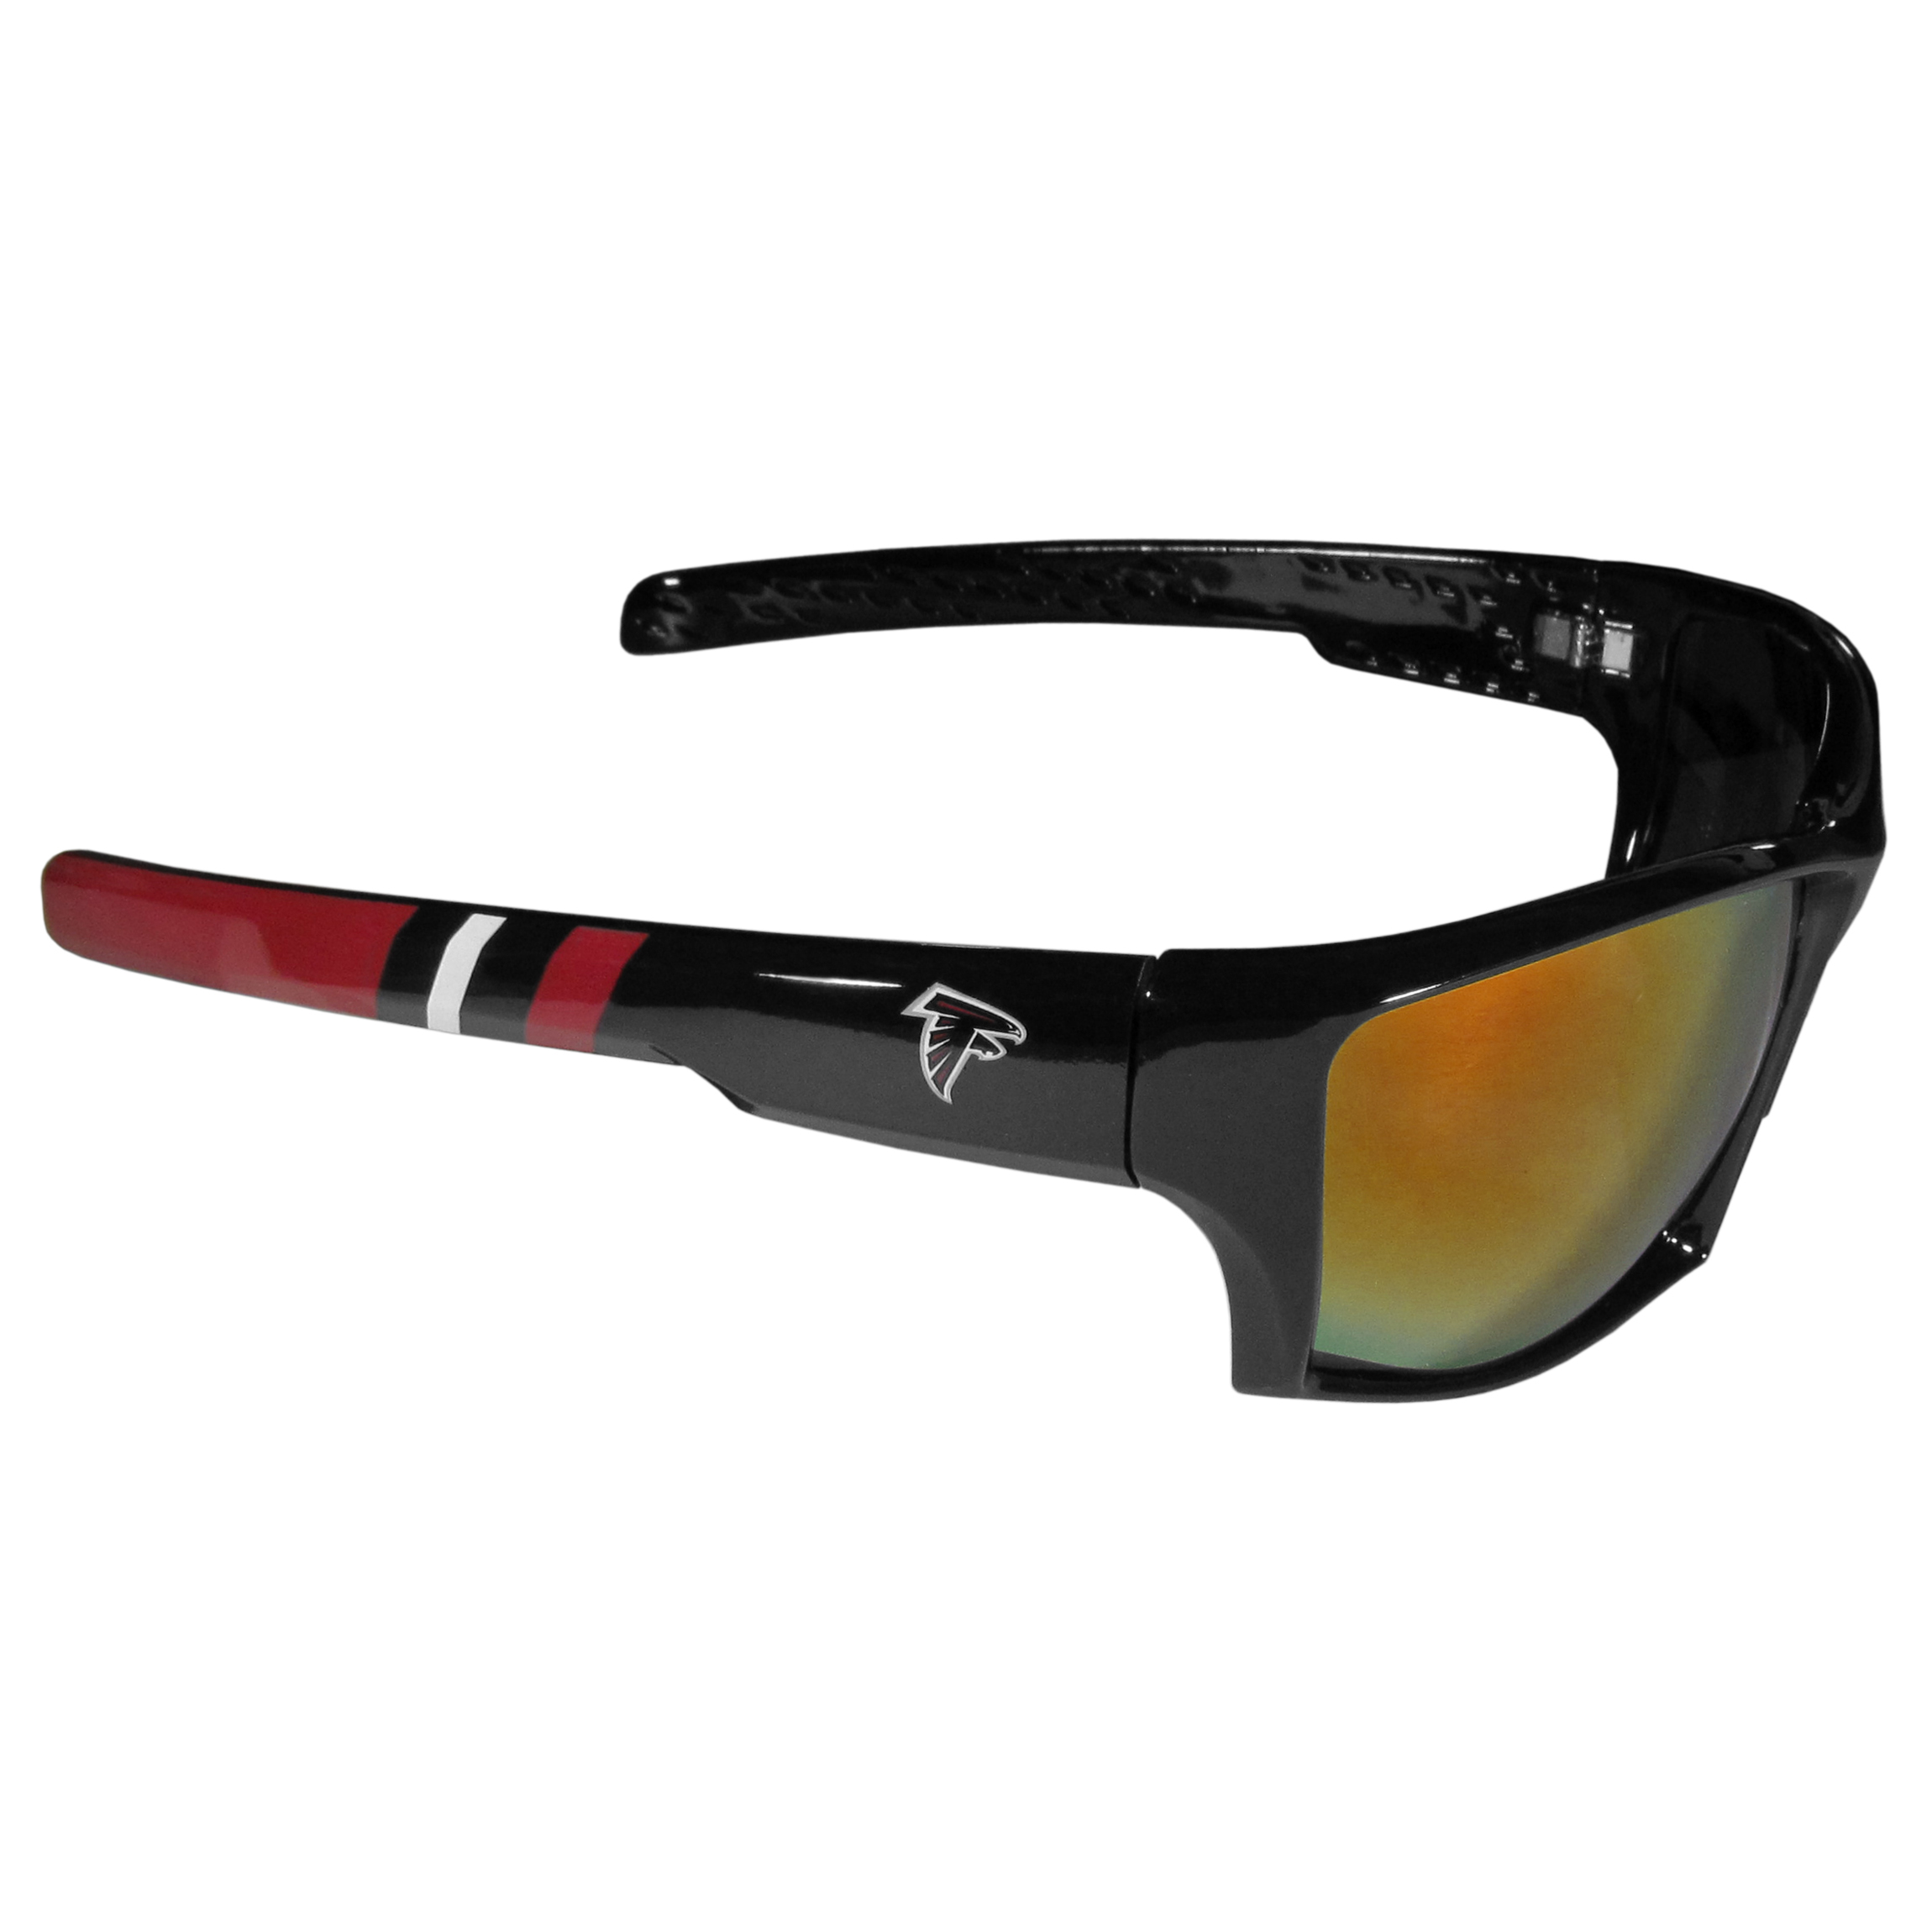 Atlanta Falcons Edge Wrap Sunglasses - Be an icon of edgy style while you're in the stadium cheering your Atlanta Falcons to victory with our polarized wrap sunglasses that feature 100% UVA/UVB rating for maximum UV protection. The light-weight frames are built to last with flex hinges for comfort and durability which make them perfect for driving or just lounging by the pool. The colorful rubber grips on the arms of these fashionable sunglasses make them perfect for someone with an active lifestyle. Whether you are hiking, fishing, boating, running on the beach, golfing or playing your favorite sport these designer frames will set you apart. Our edge wrap sunglasses are true quality eyewear at an affordable price. The wrap style frames come with team colored stripes and team logos so you can show off your die-hard team pride while protecting your eyes from those bright sun rays.